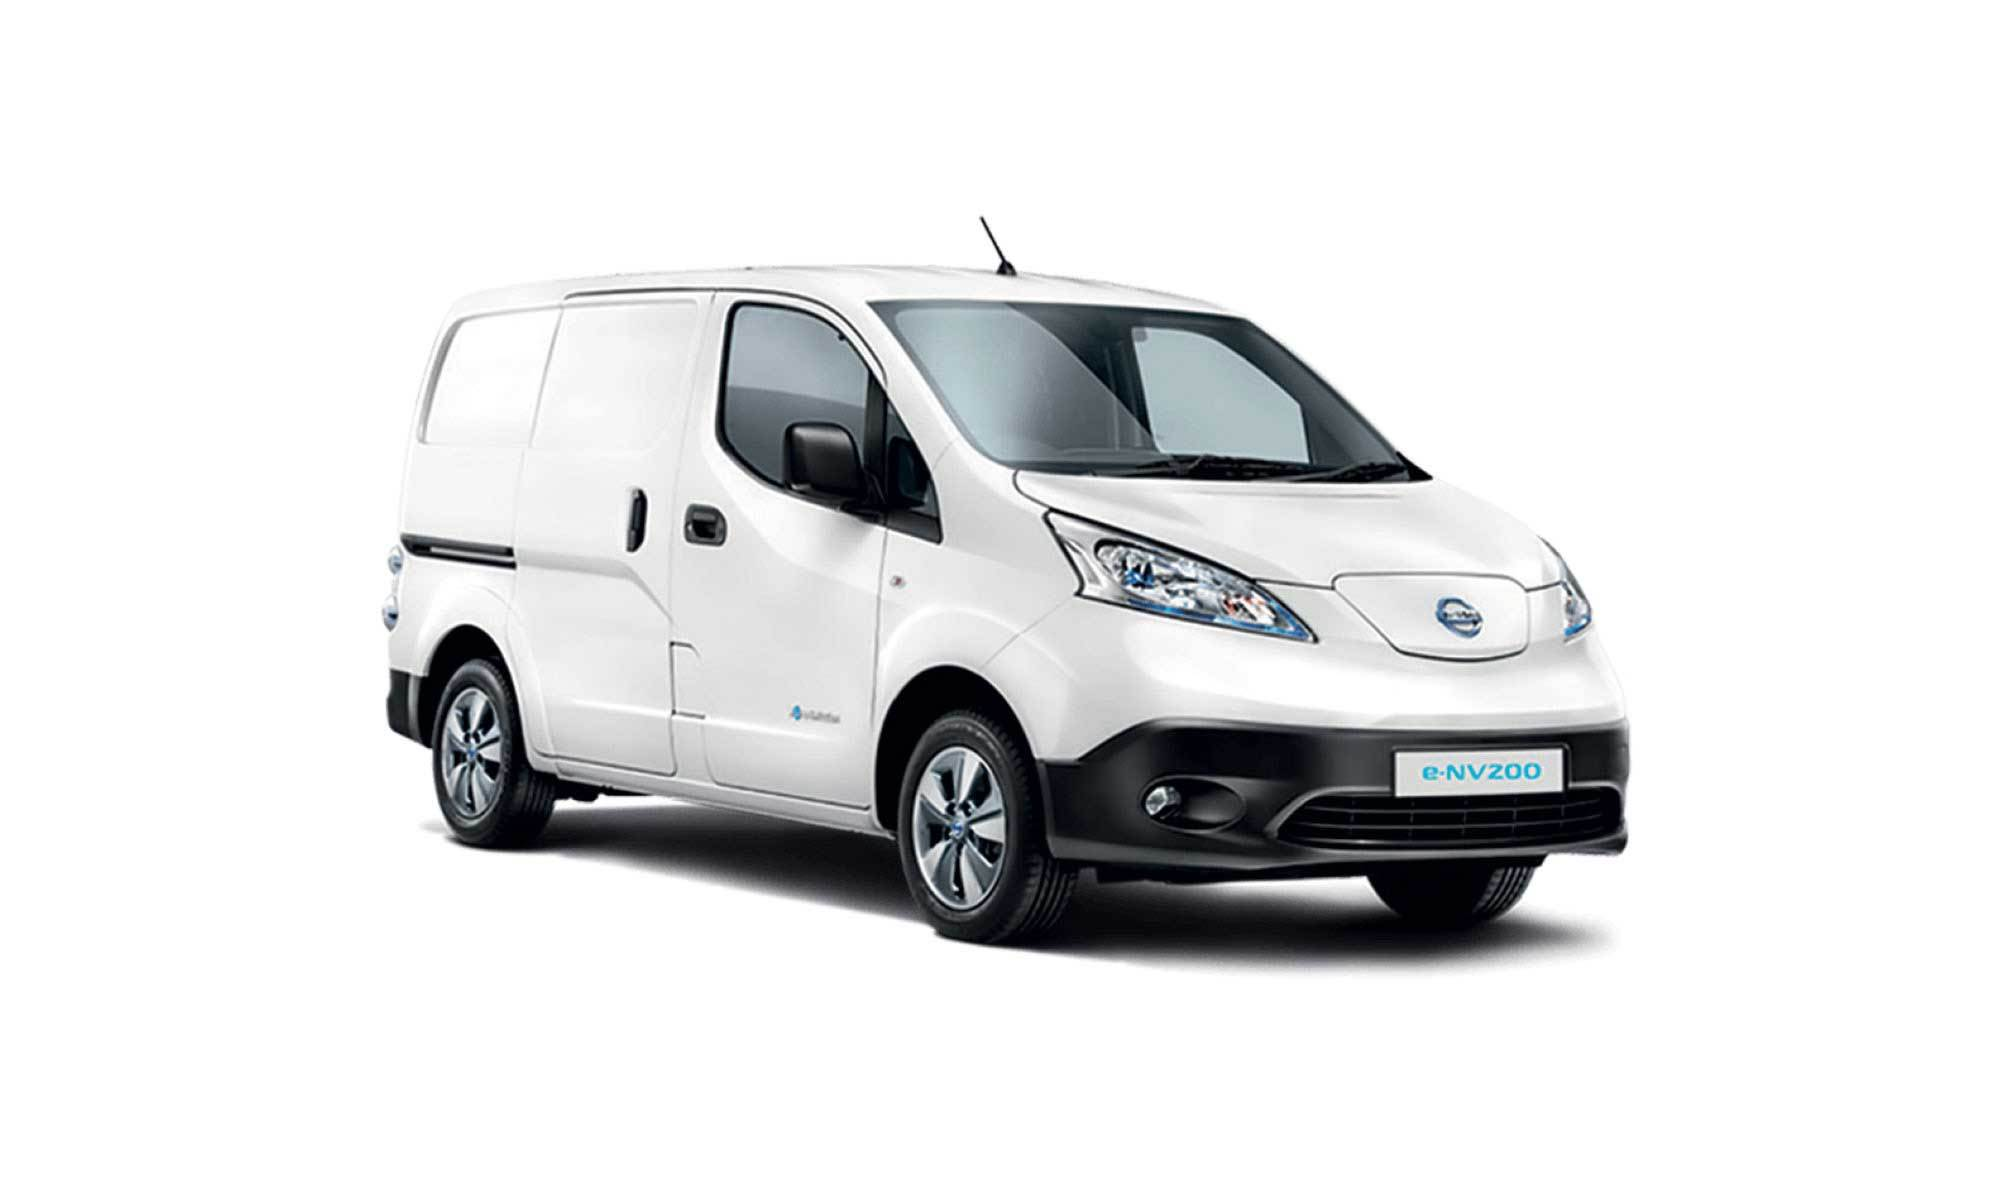 E Nv200 White Background 2